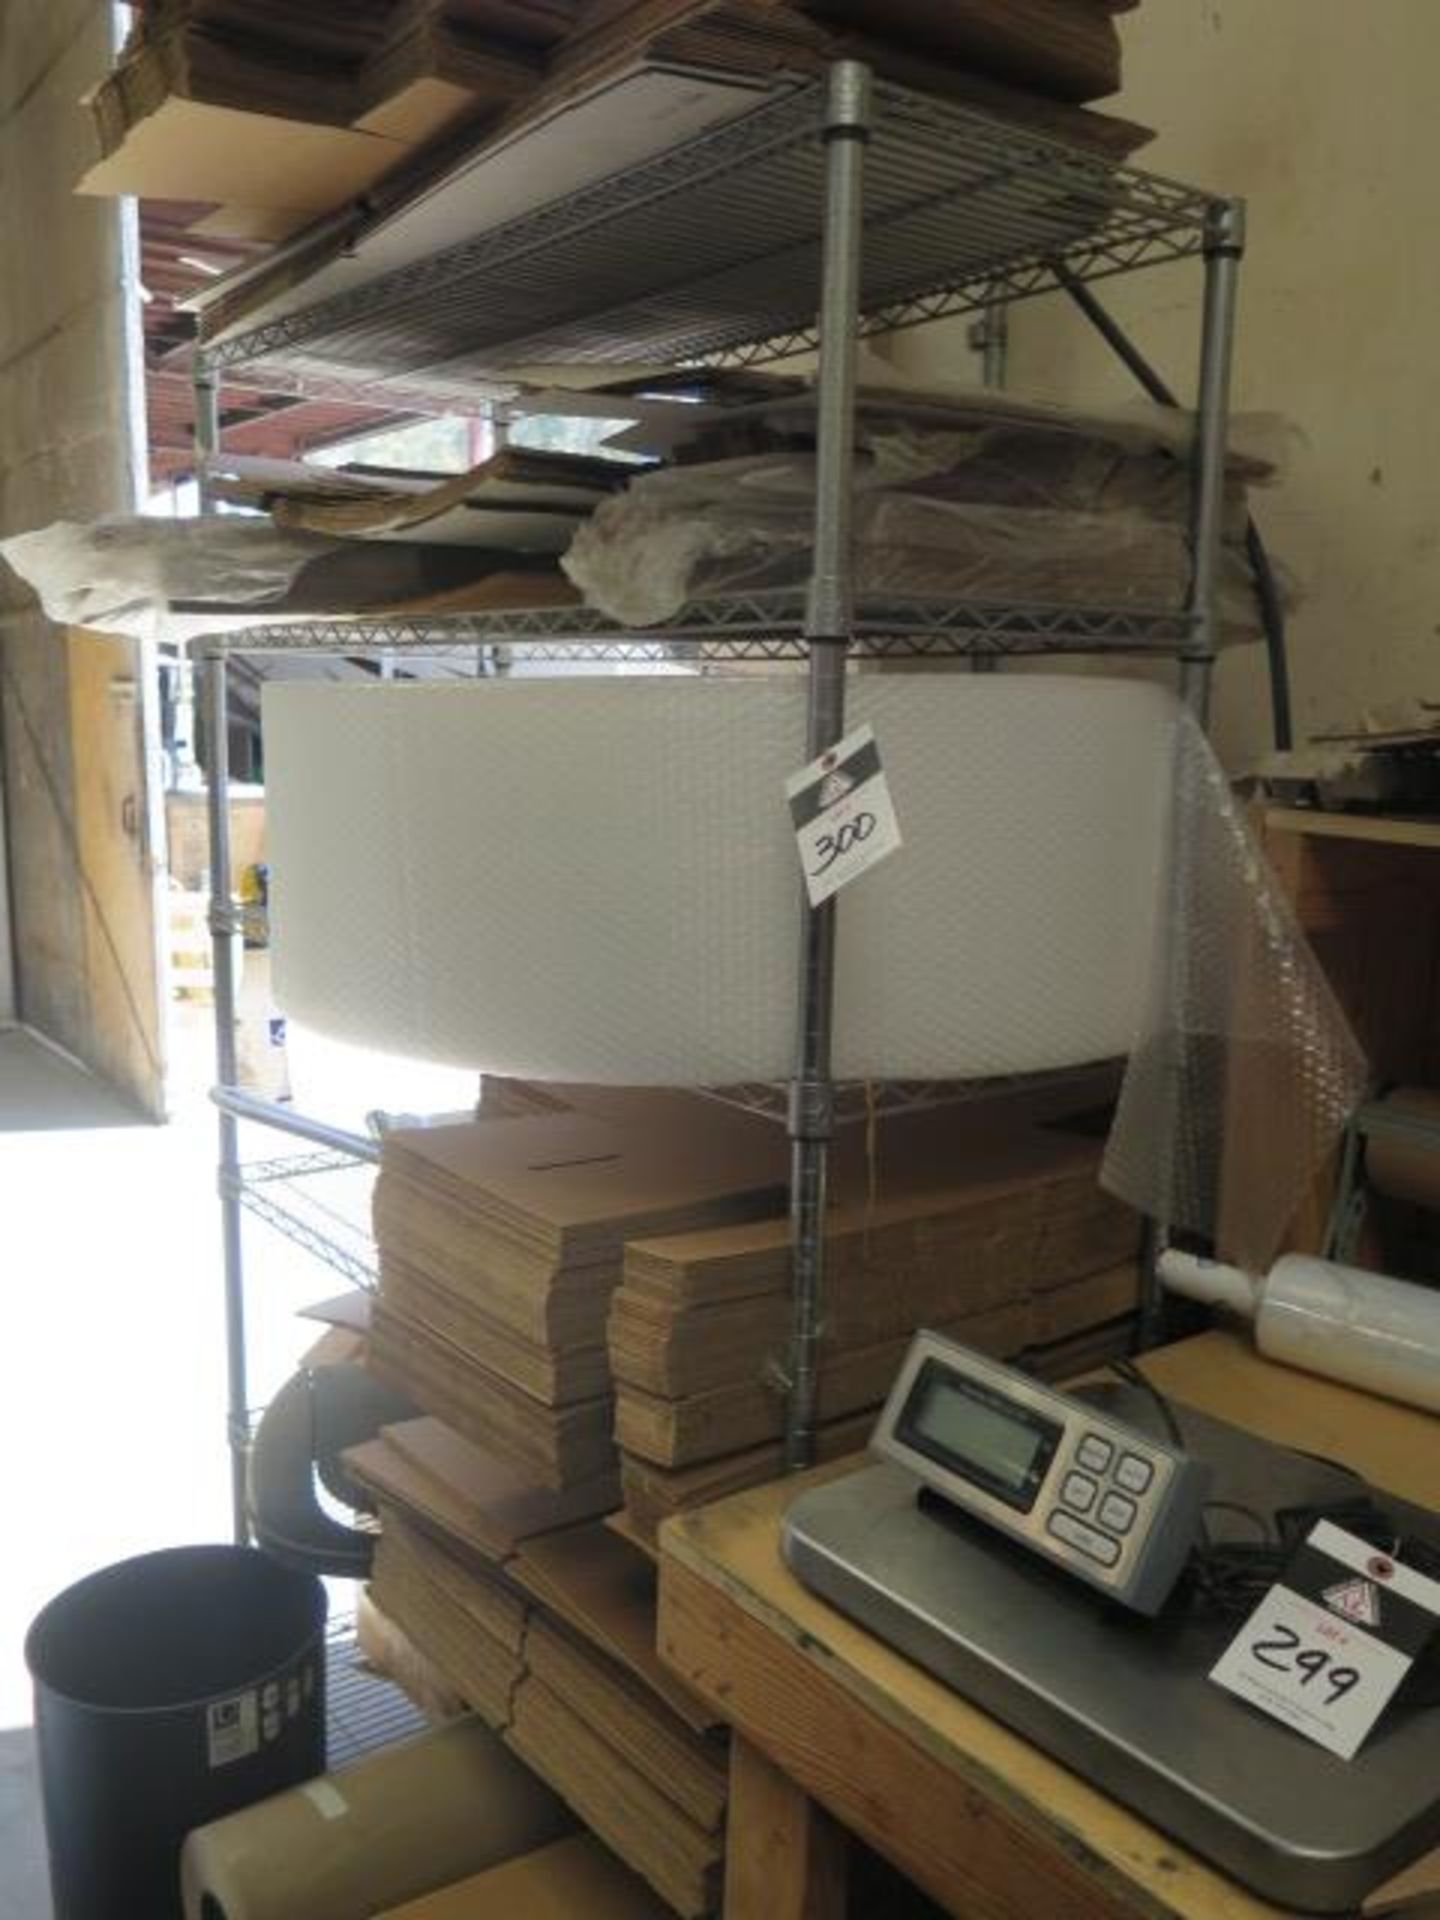 Shipping Supplies and Table (SOLD AS-IS - NO WARRANTY)